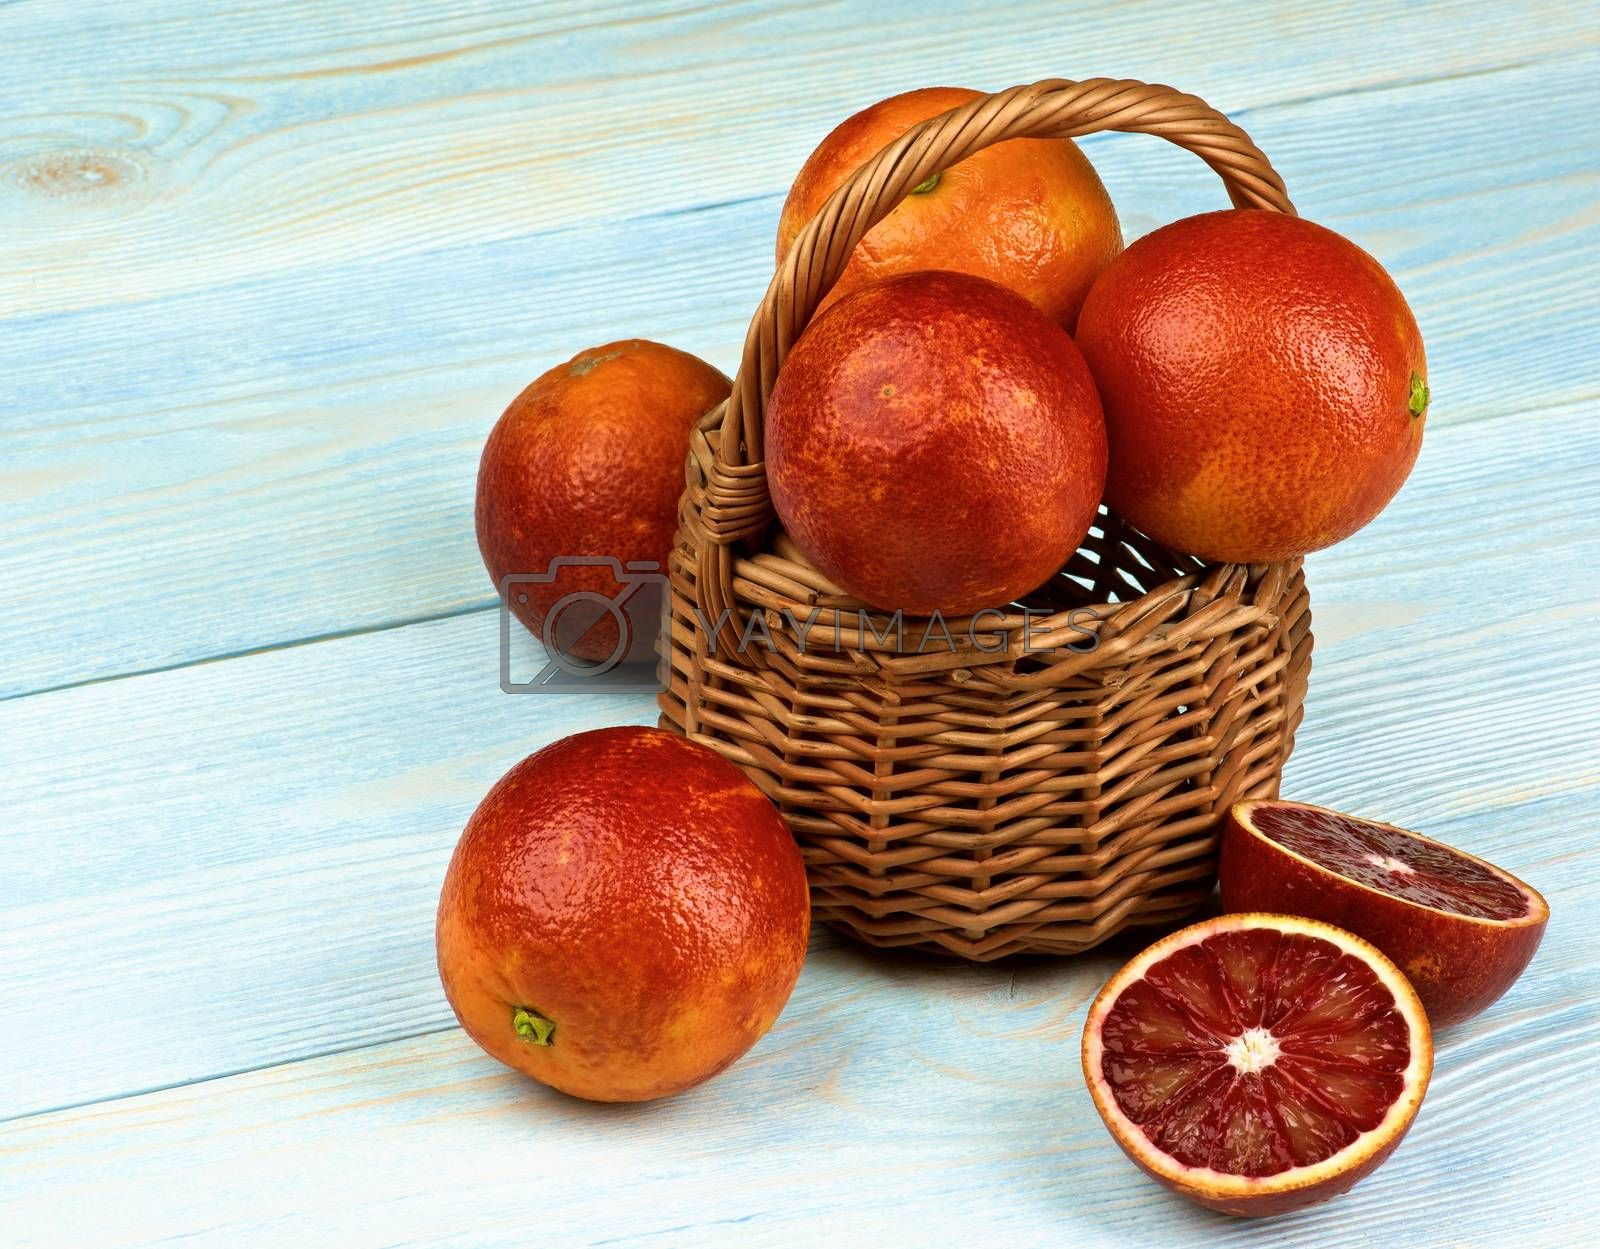 Arrangement of Blood Oranges Full Body and Halves in Wicker Basket closeup on Blue Wooden background